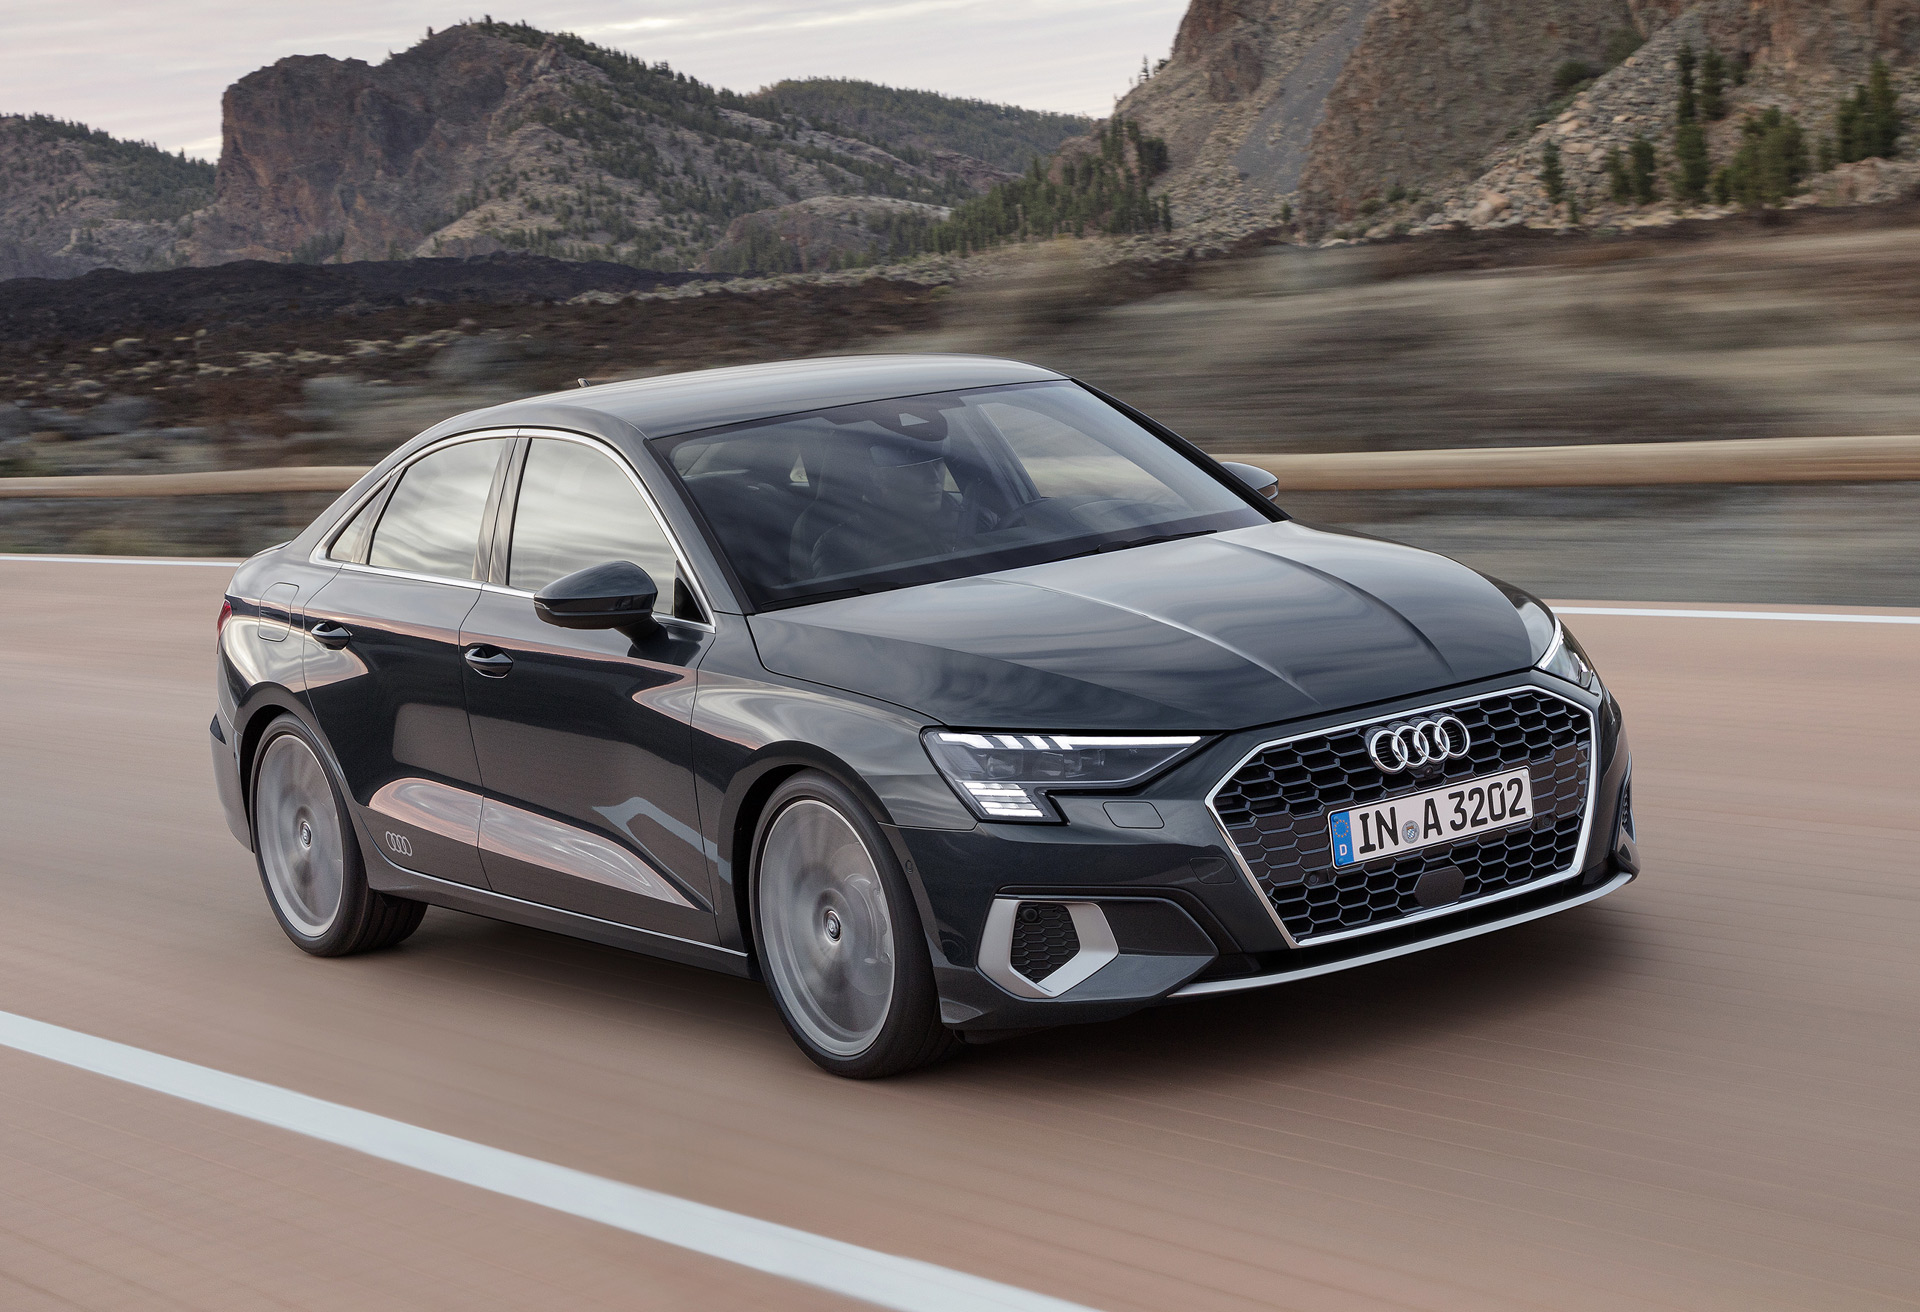 4 Audi A4 preview: Moving up in the compact class